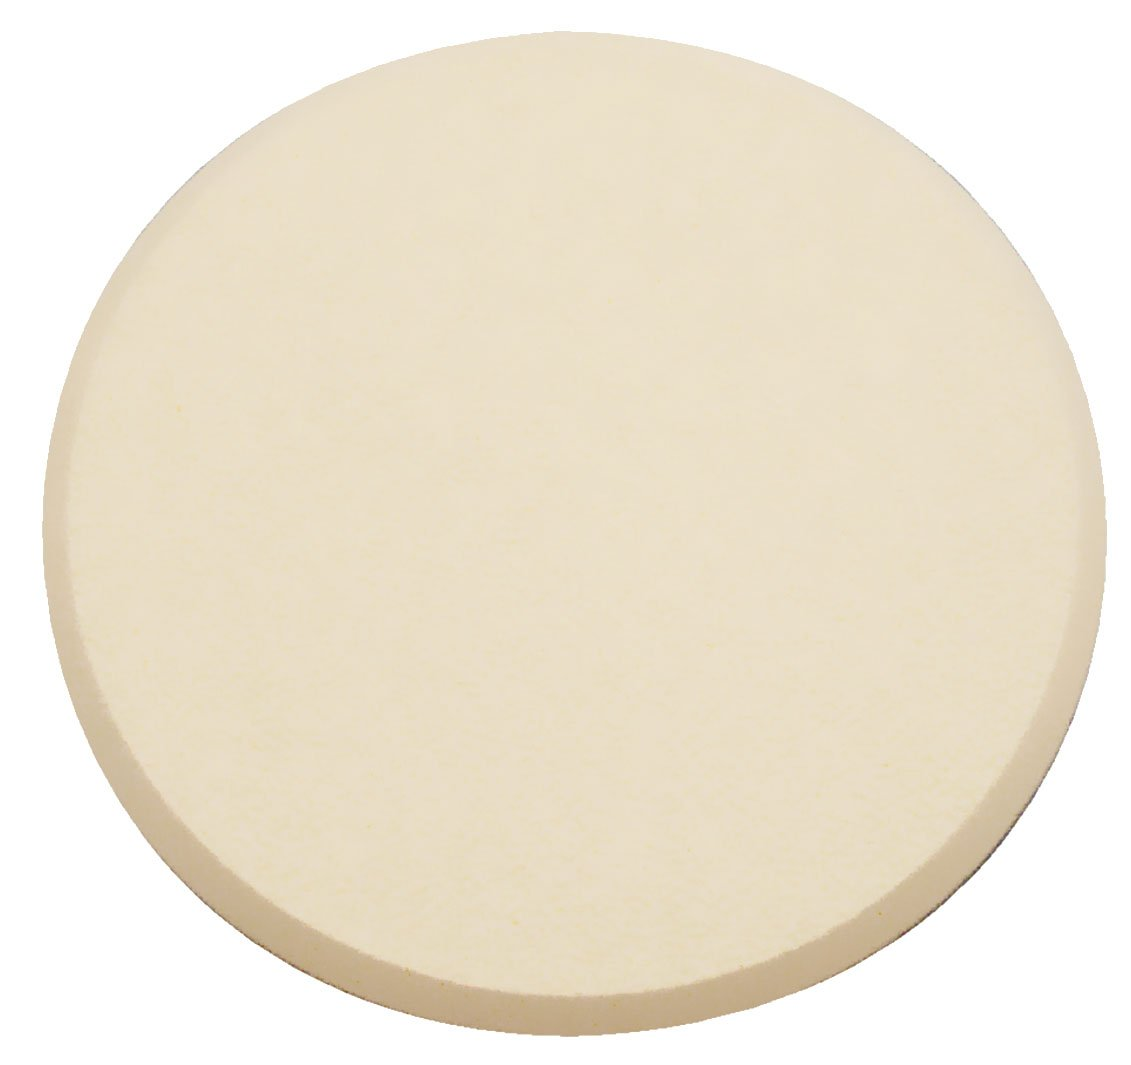 Prime Line Products U 9267 3 1/4 Inch Smooth Wall Protector, Self Adhesive,  Ivory Vinyl   Doorknobs   Amazon.com